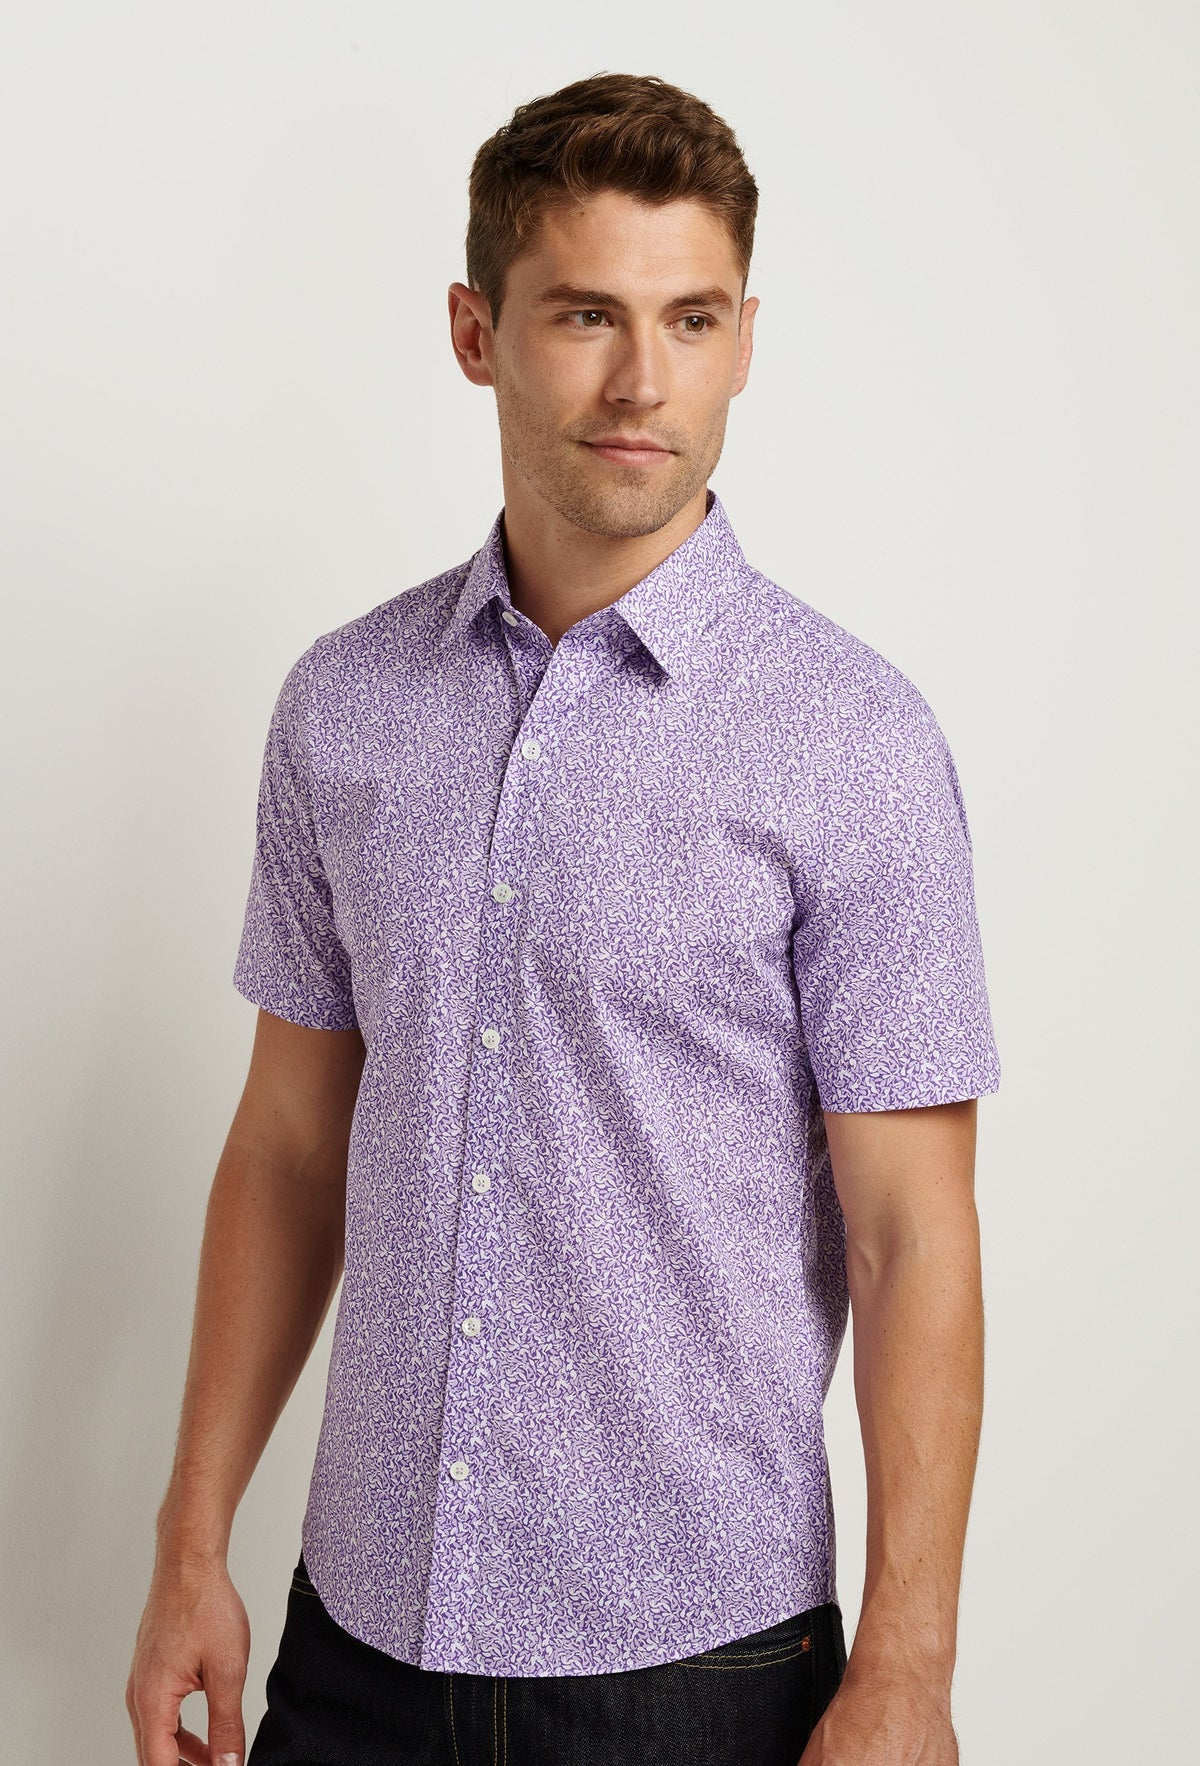 men's purple short sleeve button down. Casual dress shirt with leaf print